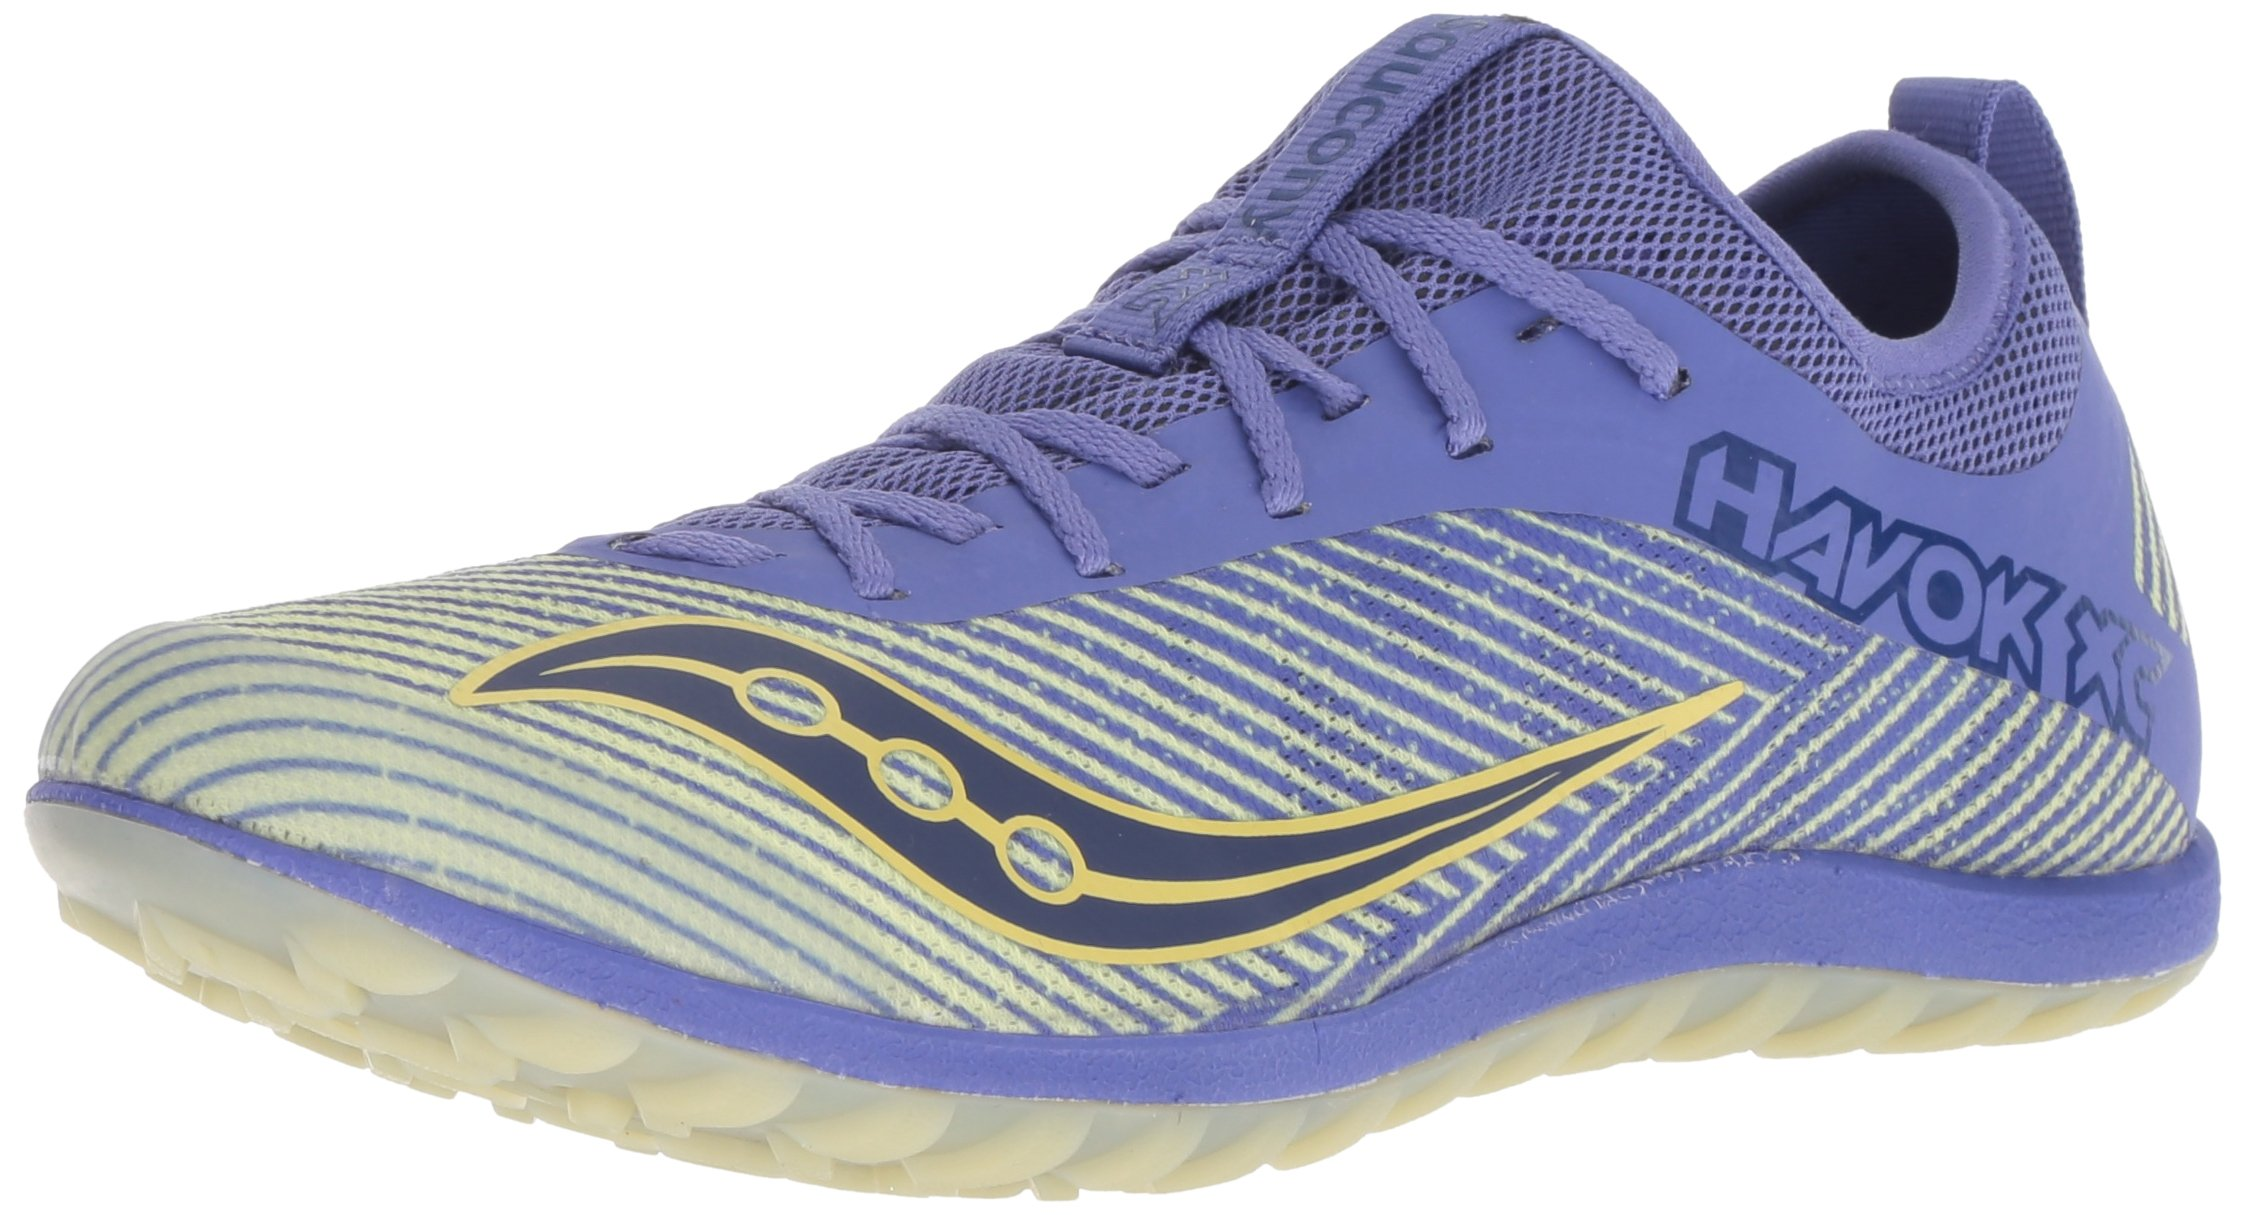 Saucony Women's Havok XC2 Flat Track Shoe, Purple/Yellow, 6 M US